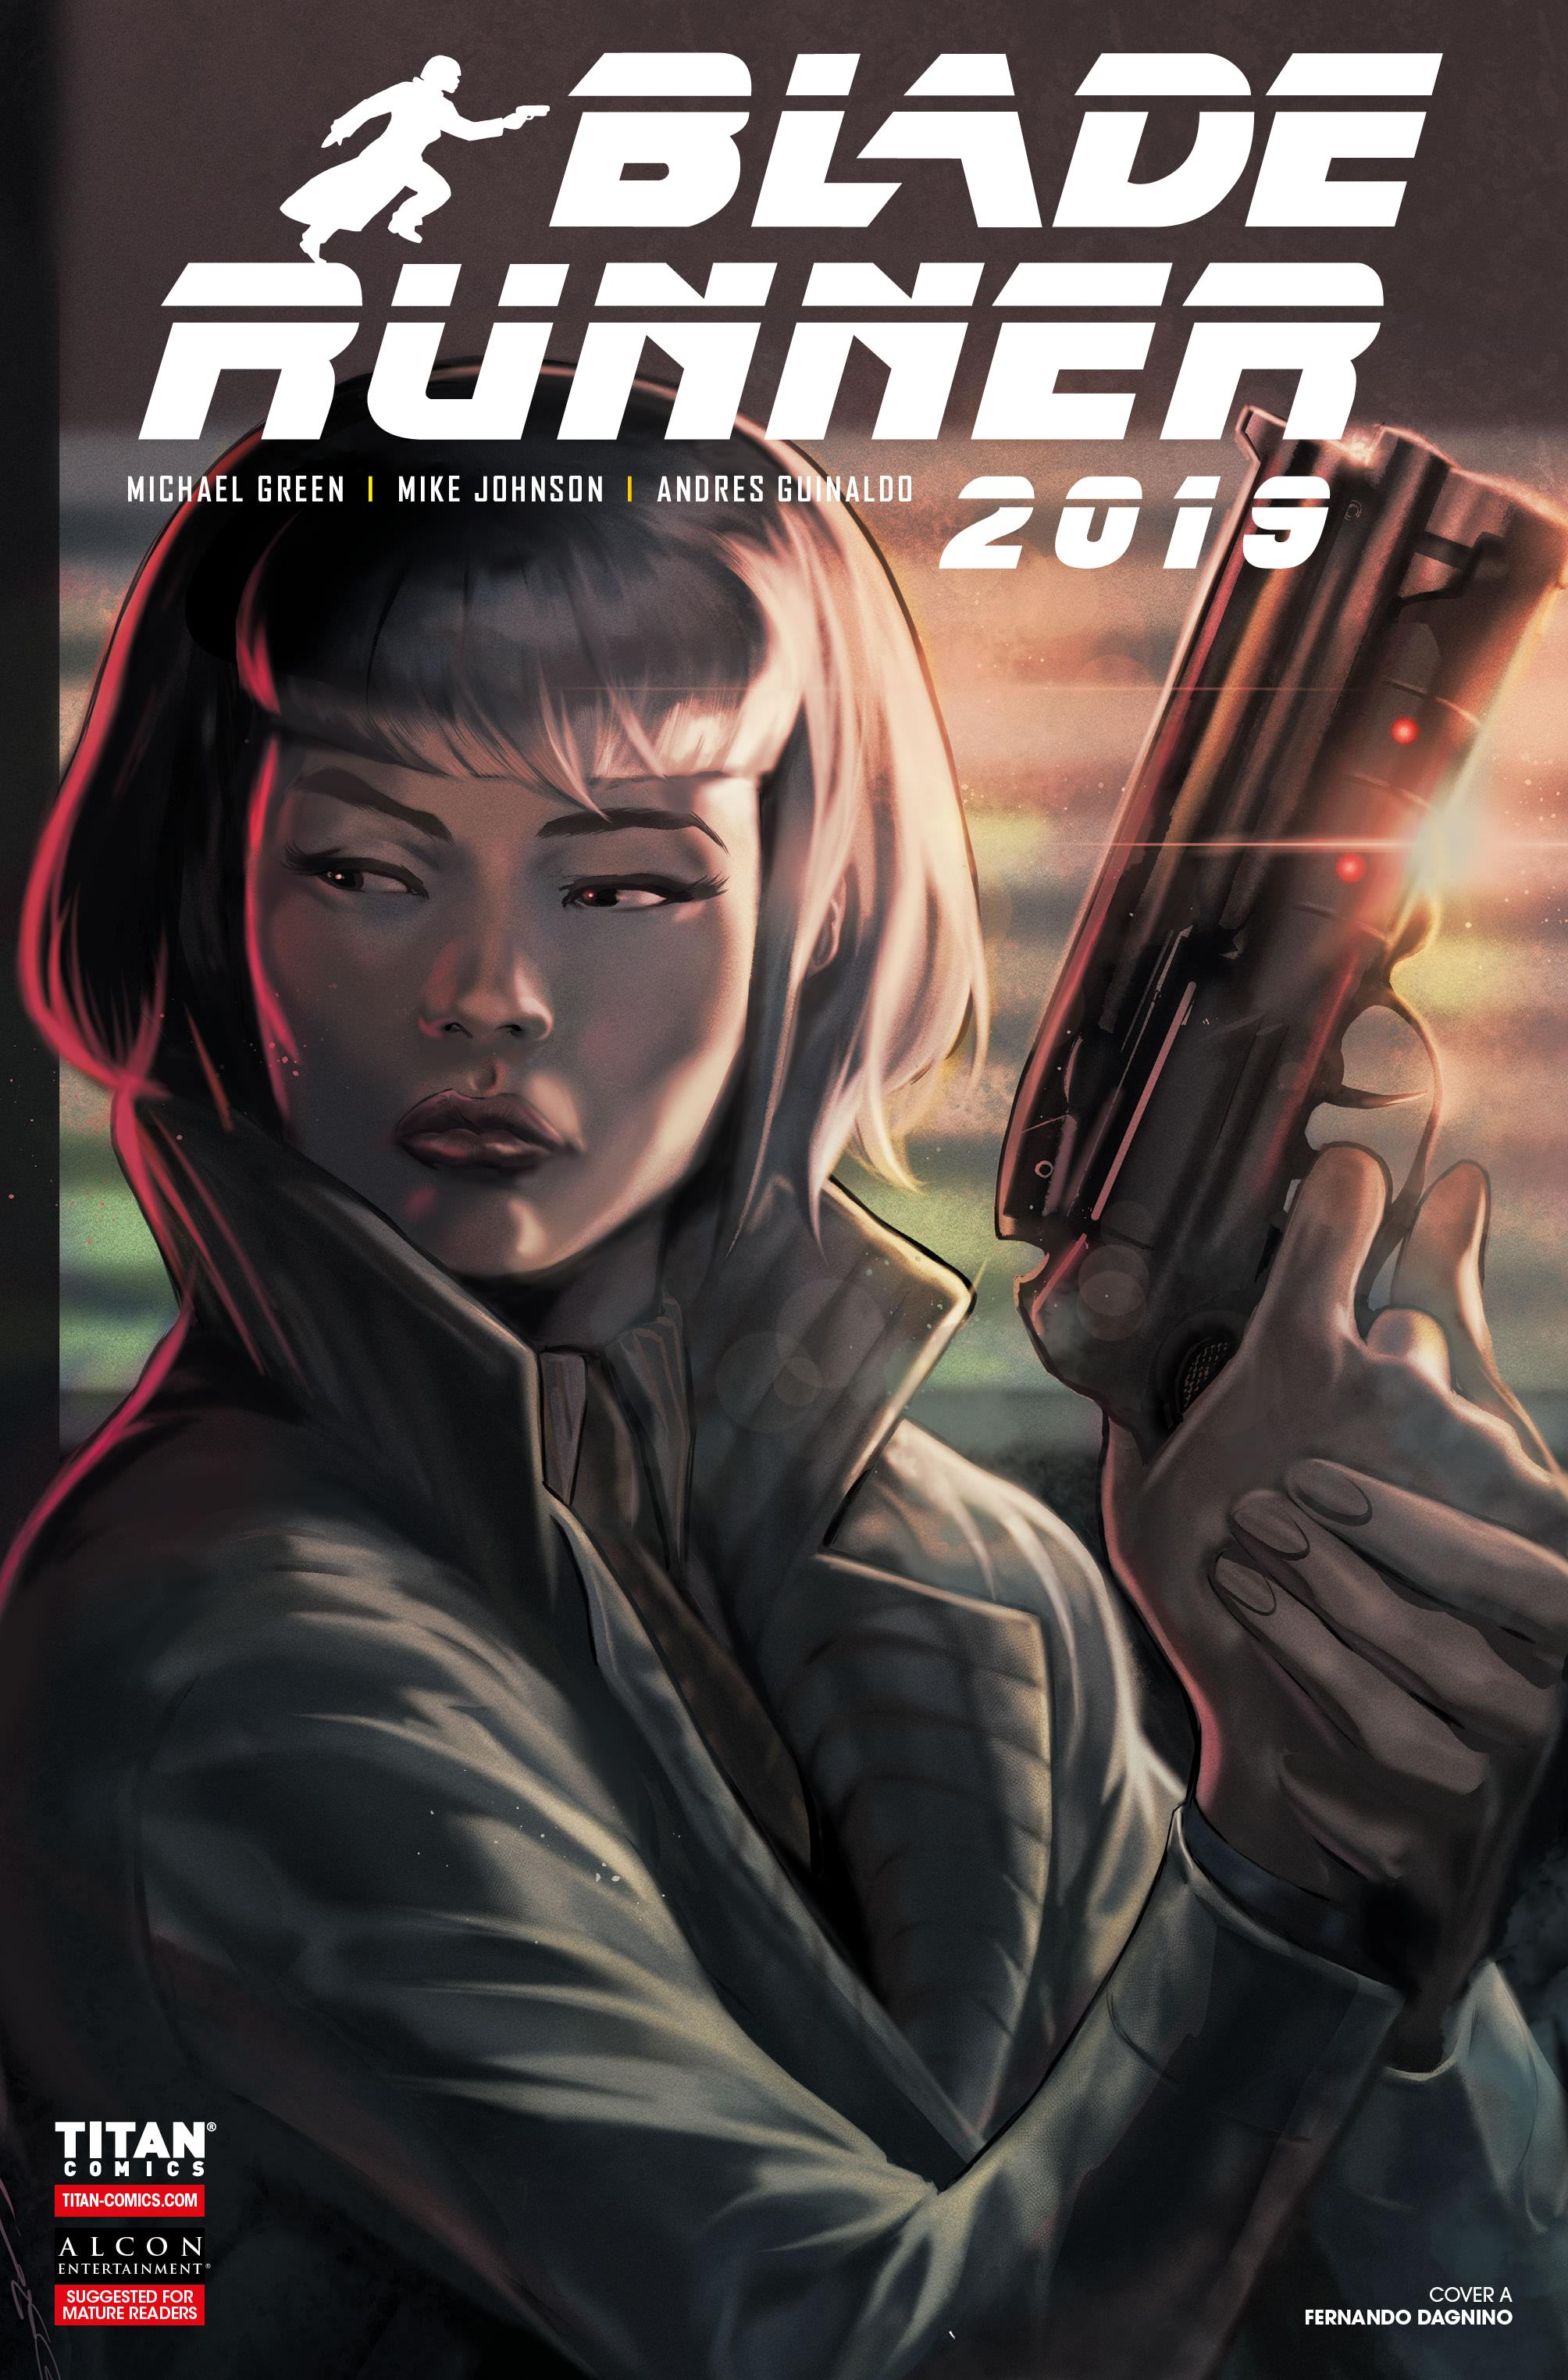 Blade Runner 2019 012 2020 3 covers digital Son of Ultron